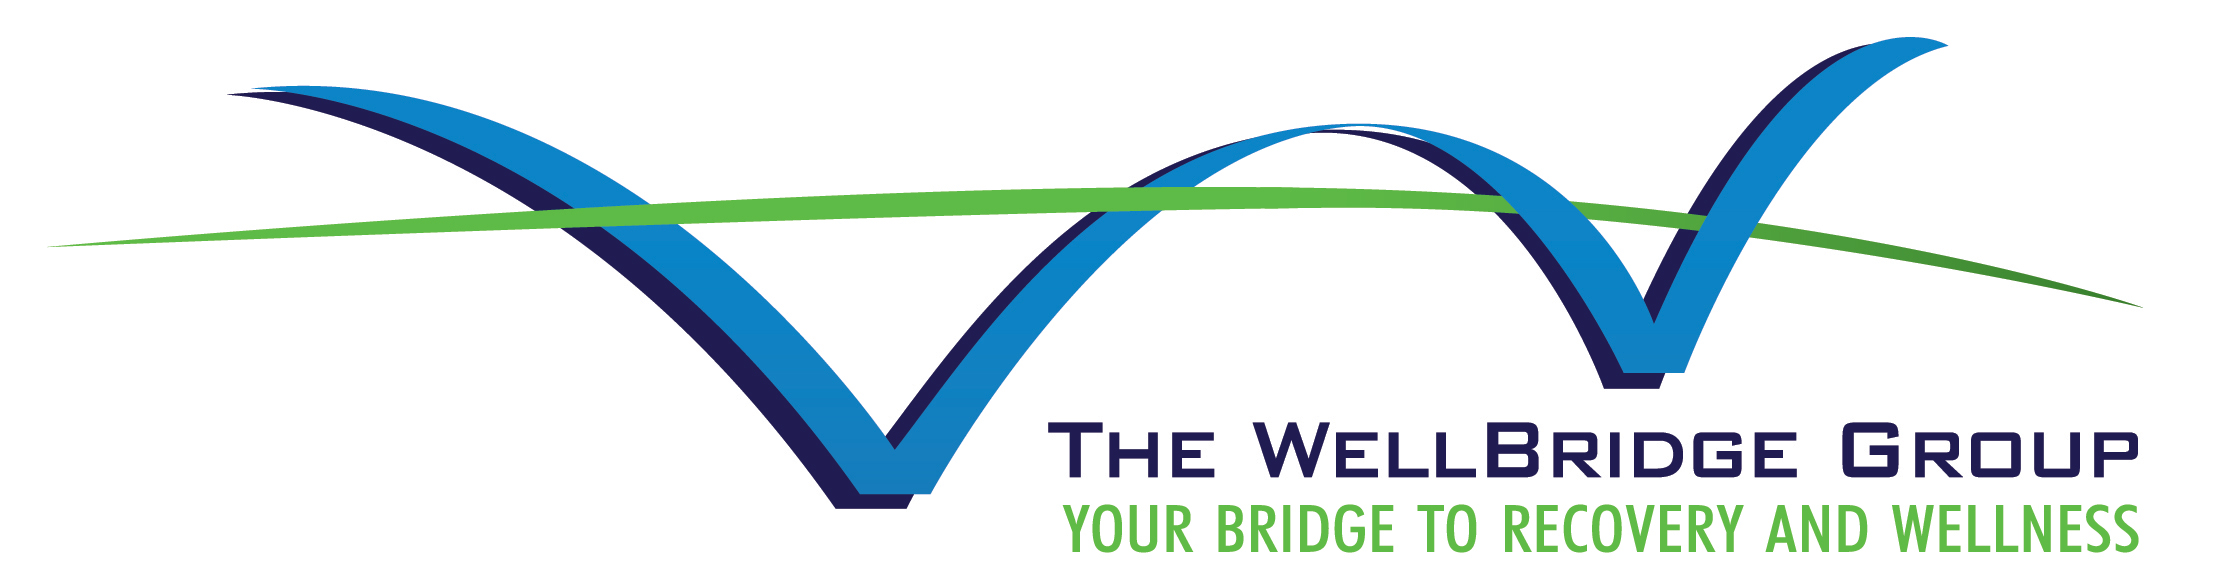 Wellbridge logo